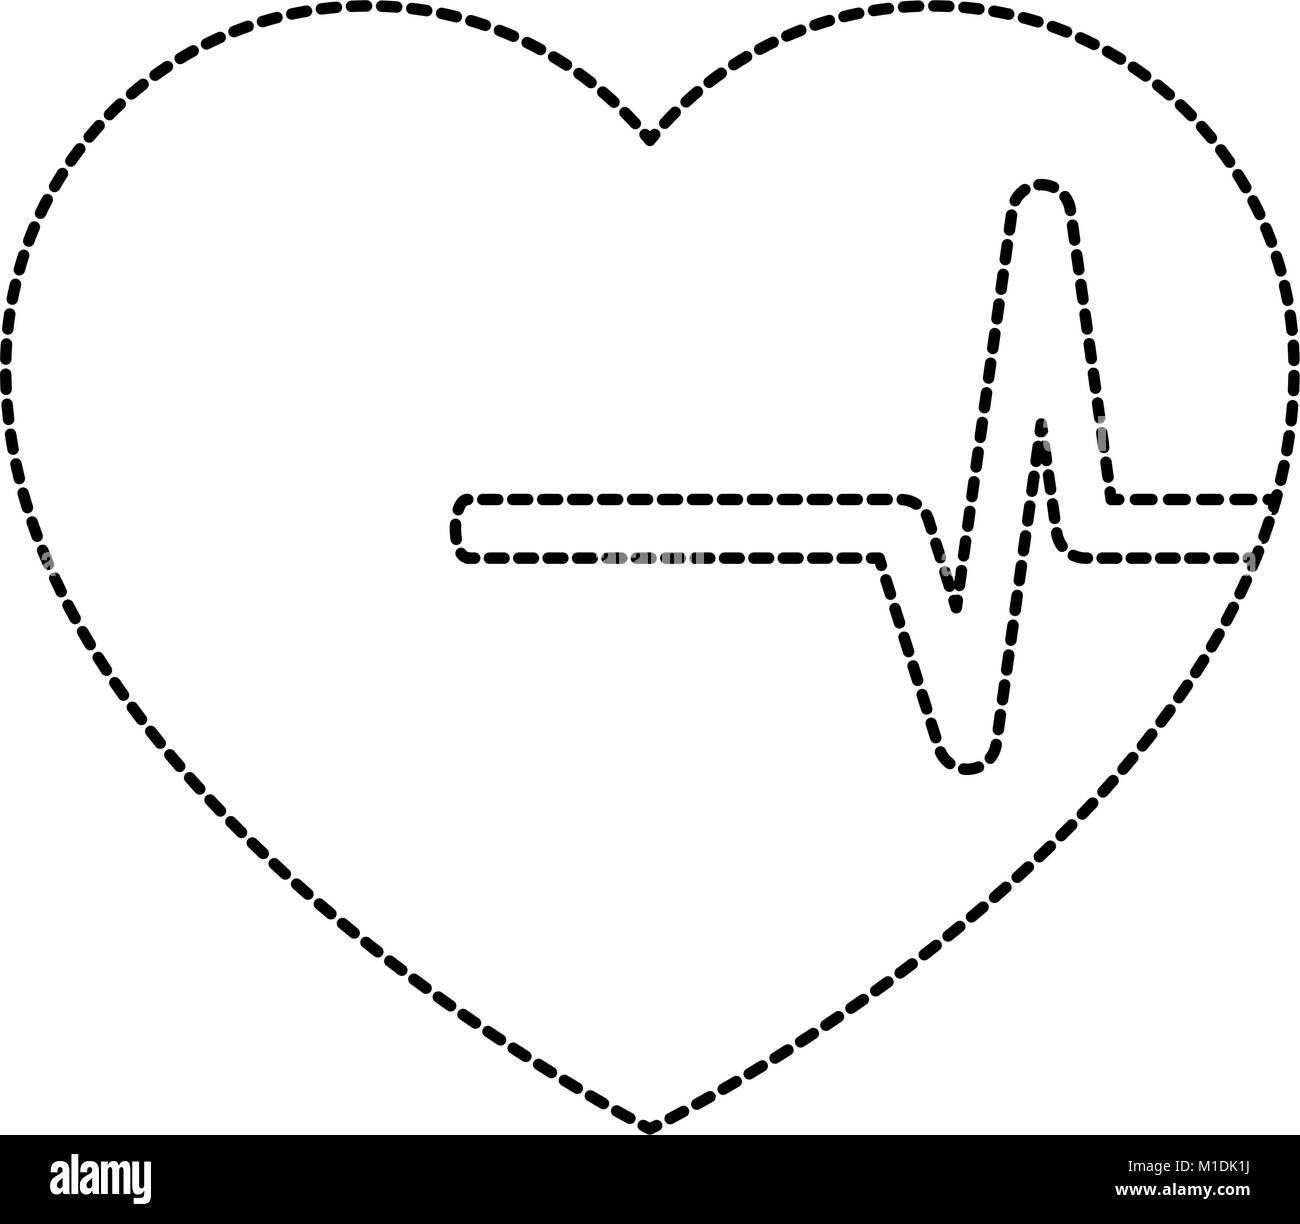 ekg flat black and white stock photos images alamy EKG Heart Diagram Art heart cardio isolated icon vector illustration design stock image